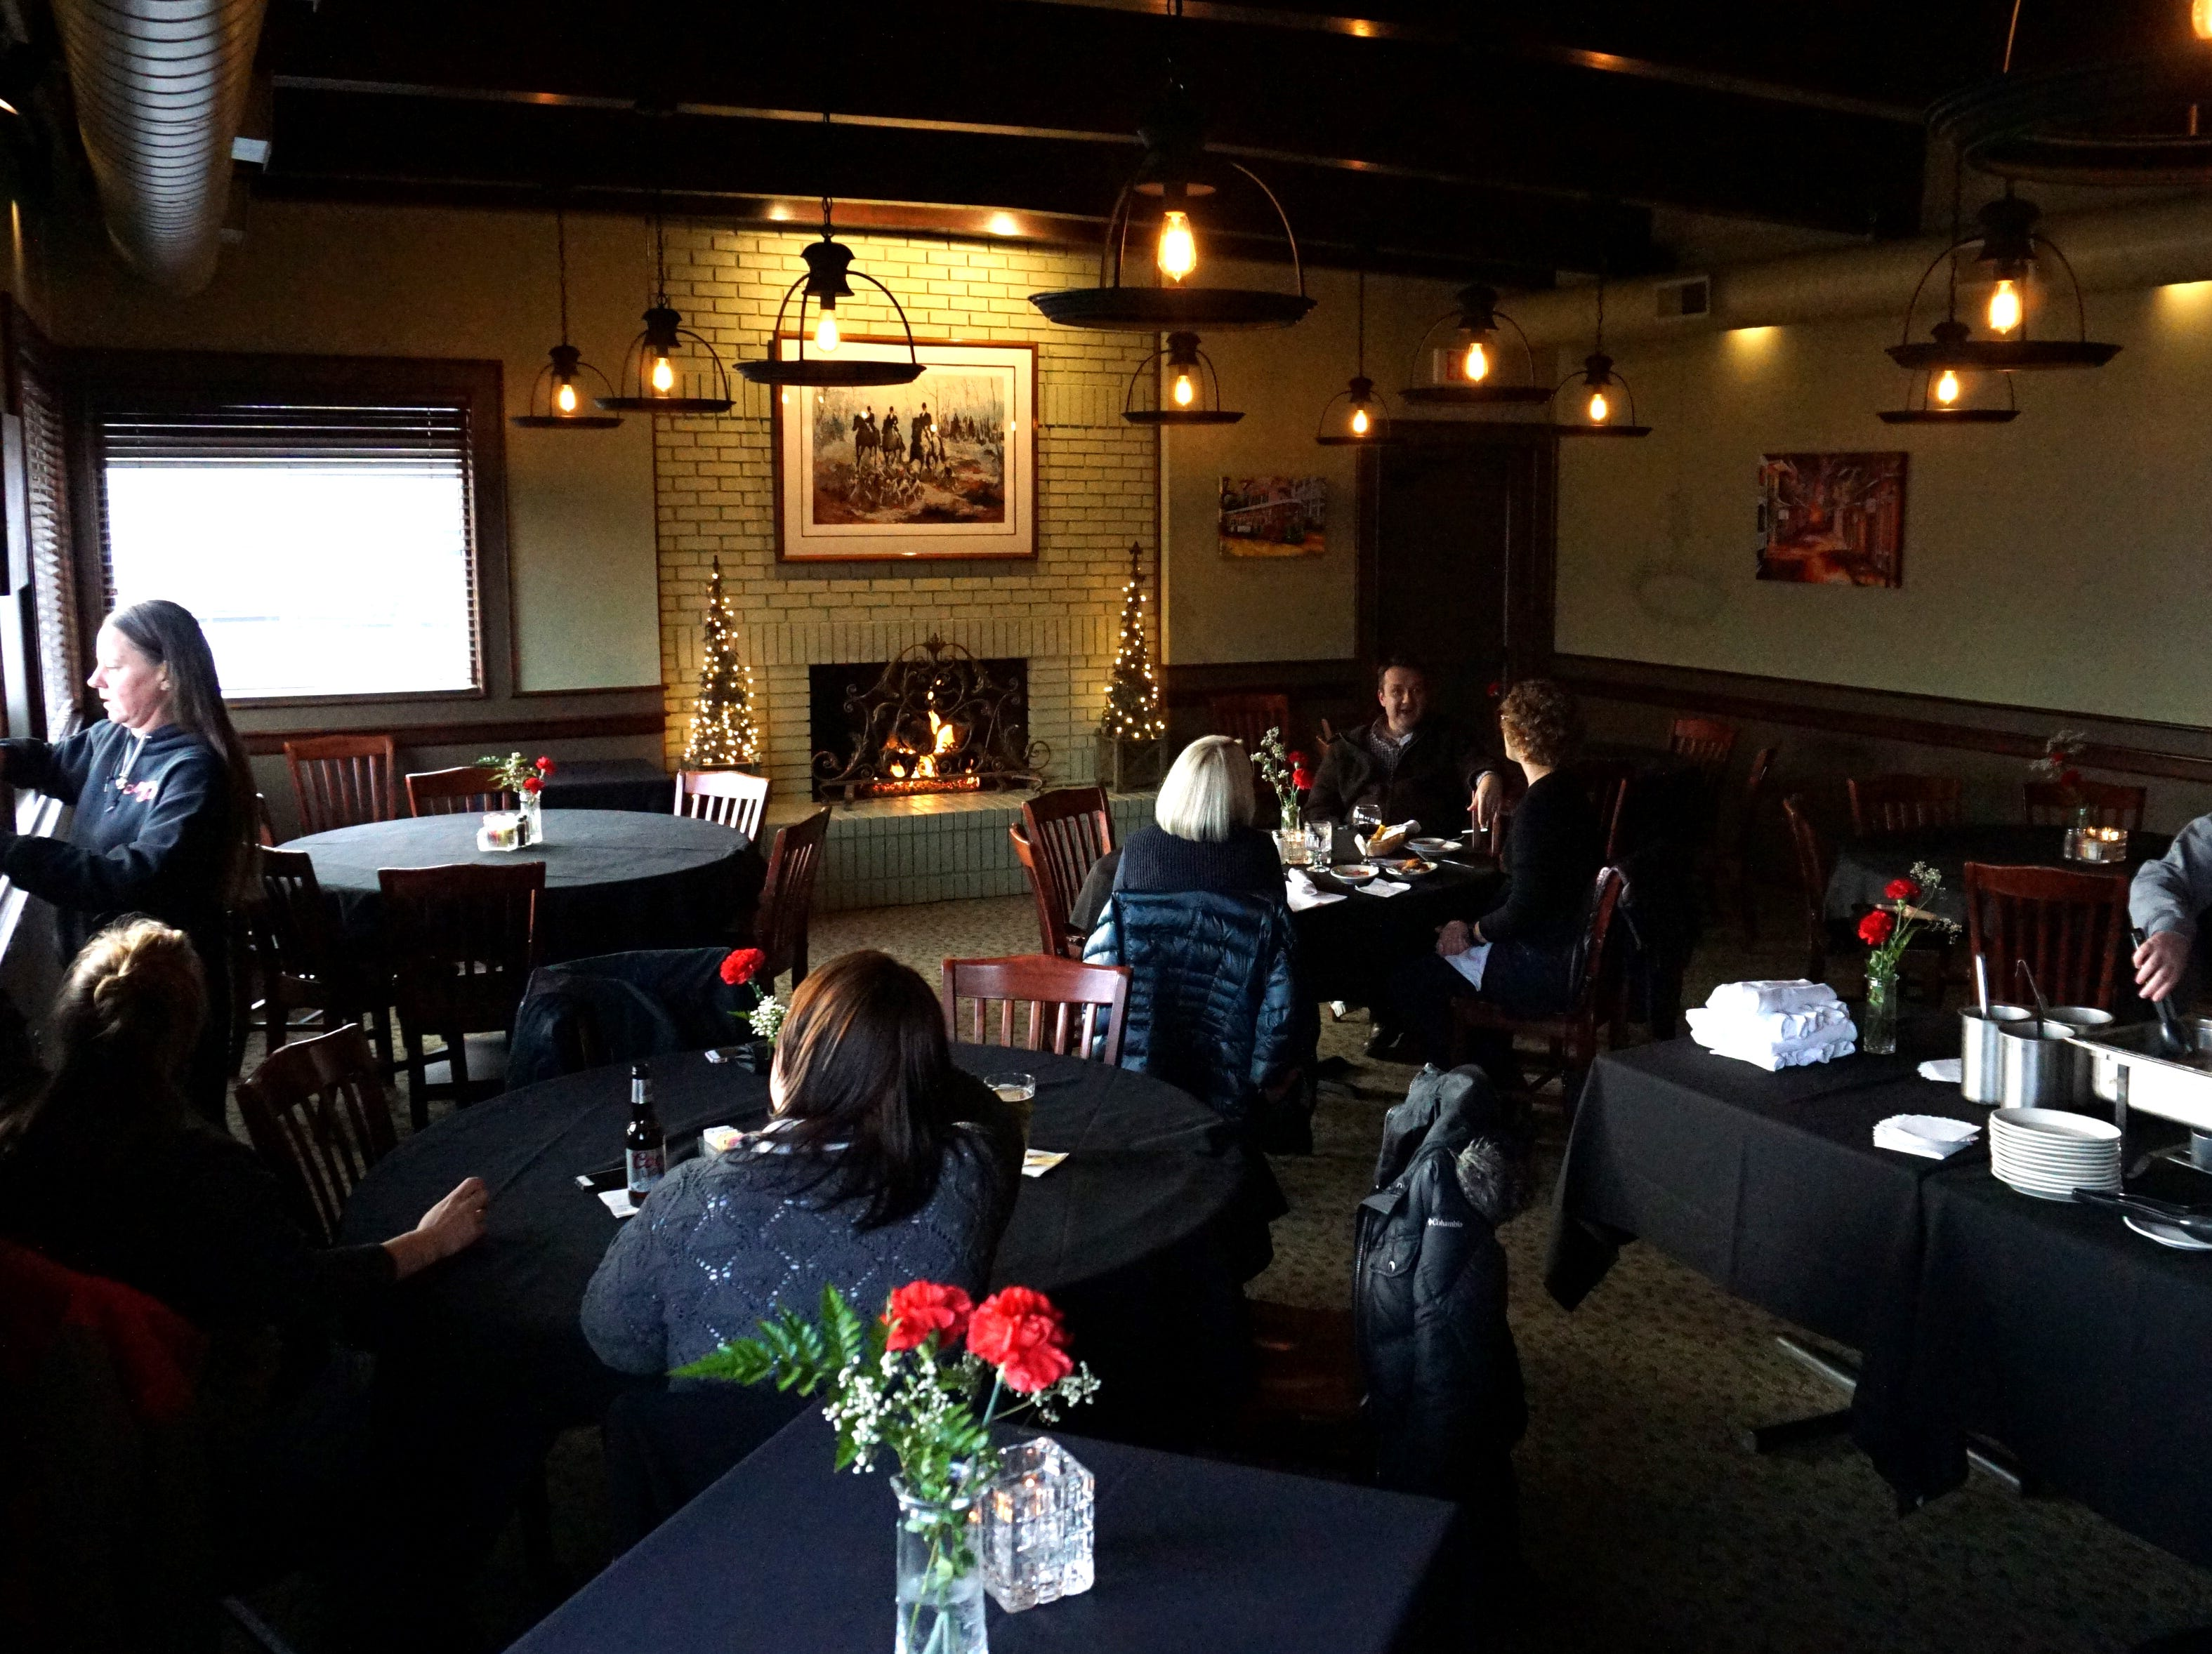 Stella's Trackside in Plymouth on Starkweather. The eatery is now offering a Friday afternoon happy hour in this room for educators with snacks and reduced price drinks.